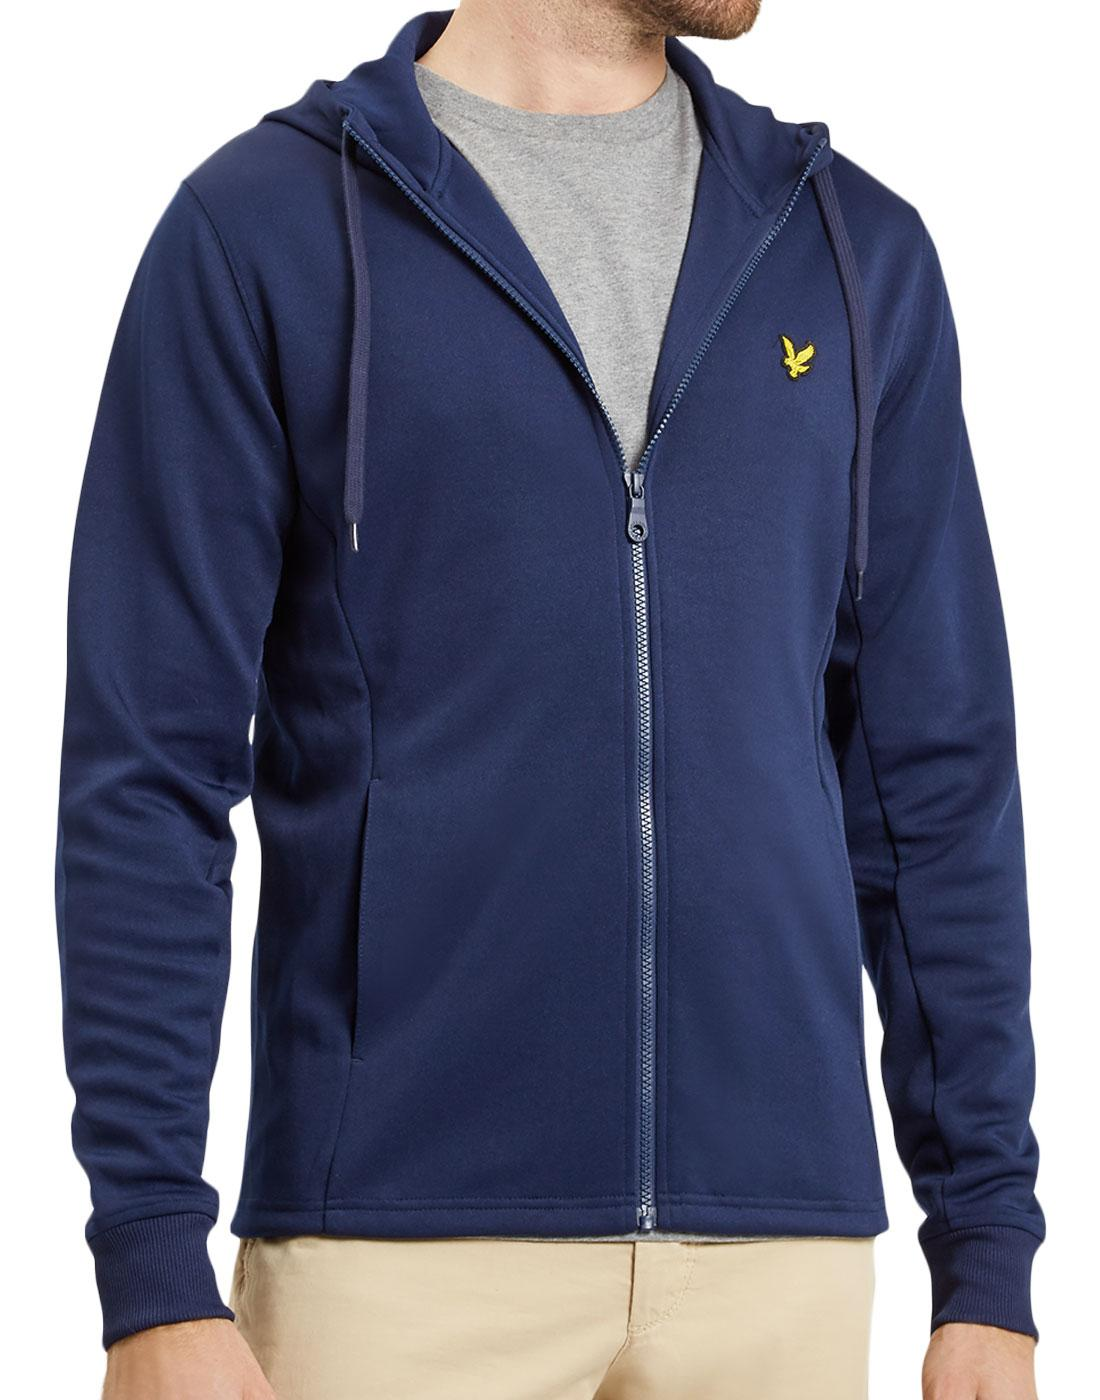 LYLE & SCOTT Retro Hooded Tricot Track Jacket (N)